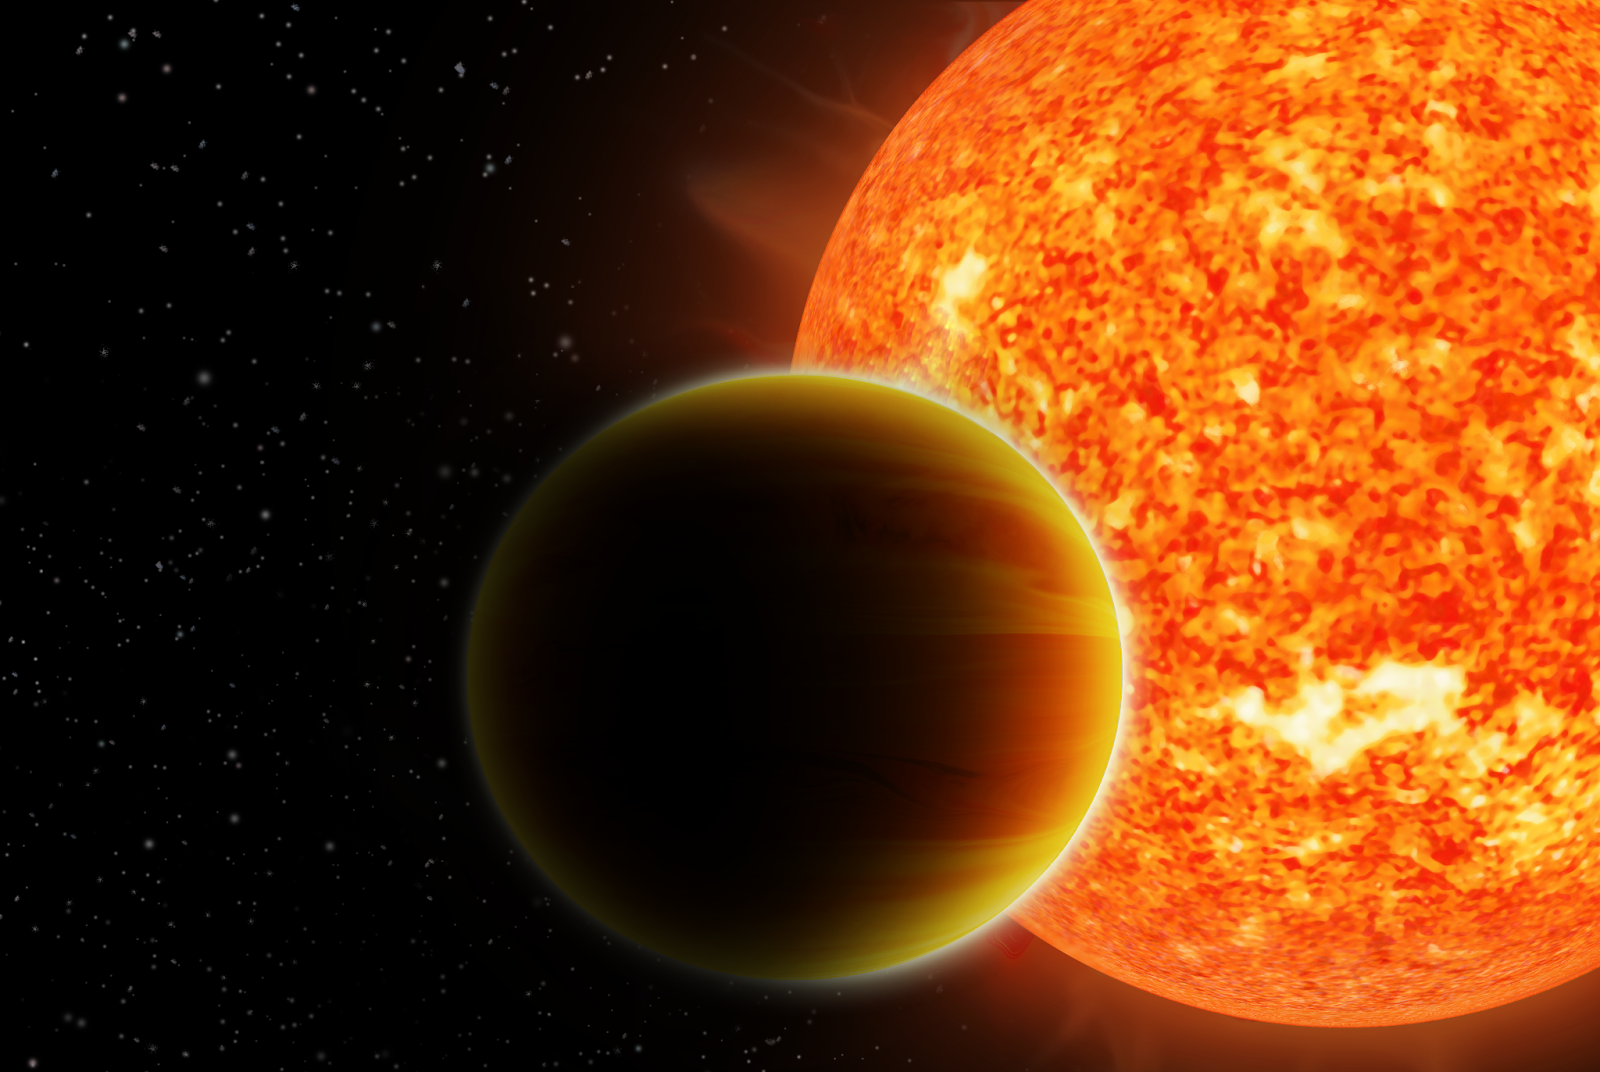 Illustration of a 'hot Jupiter' orbiting a sun-like star. Credit: Haven Giguere, Nikku Madhusudhan